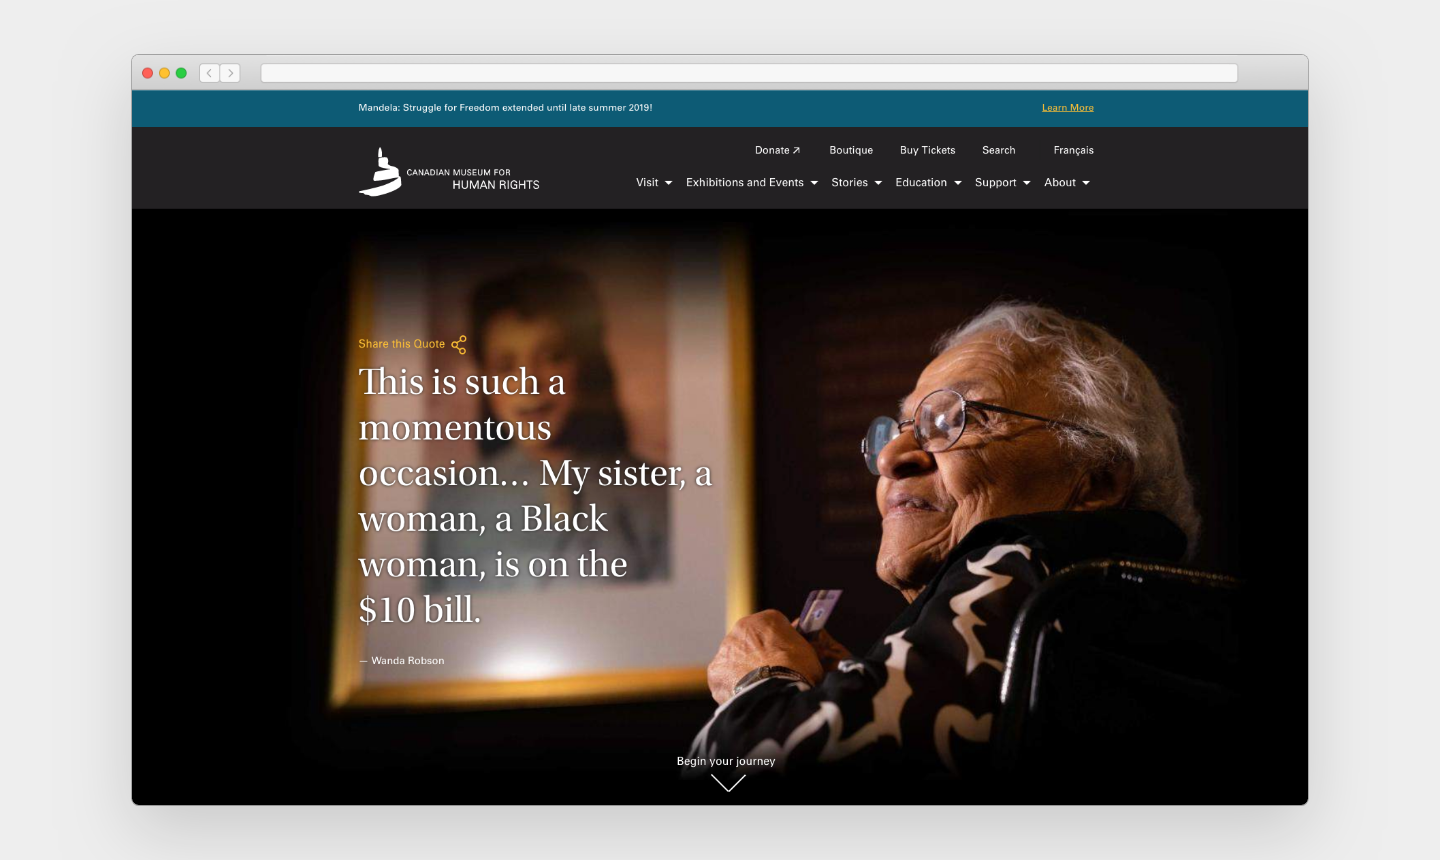 "Screenshot of a webpage with a teal blue bar on top announcing ""Mandela: Struggle for Freedom extended until late summer 2019."" Below that are two rows of navigational items. The majority of the image is a photo of an older woman looking off towards the left and large text that reads, ""This is such a momentous occasion . . . My sister, a woman, a Black woman, is on the $10 bill."""